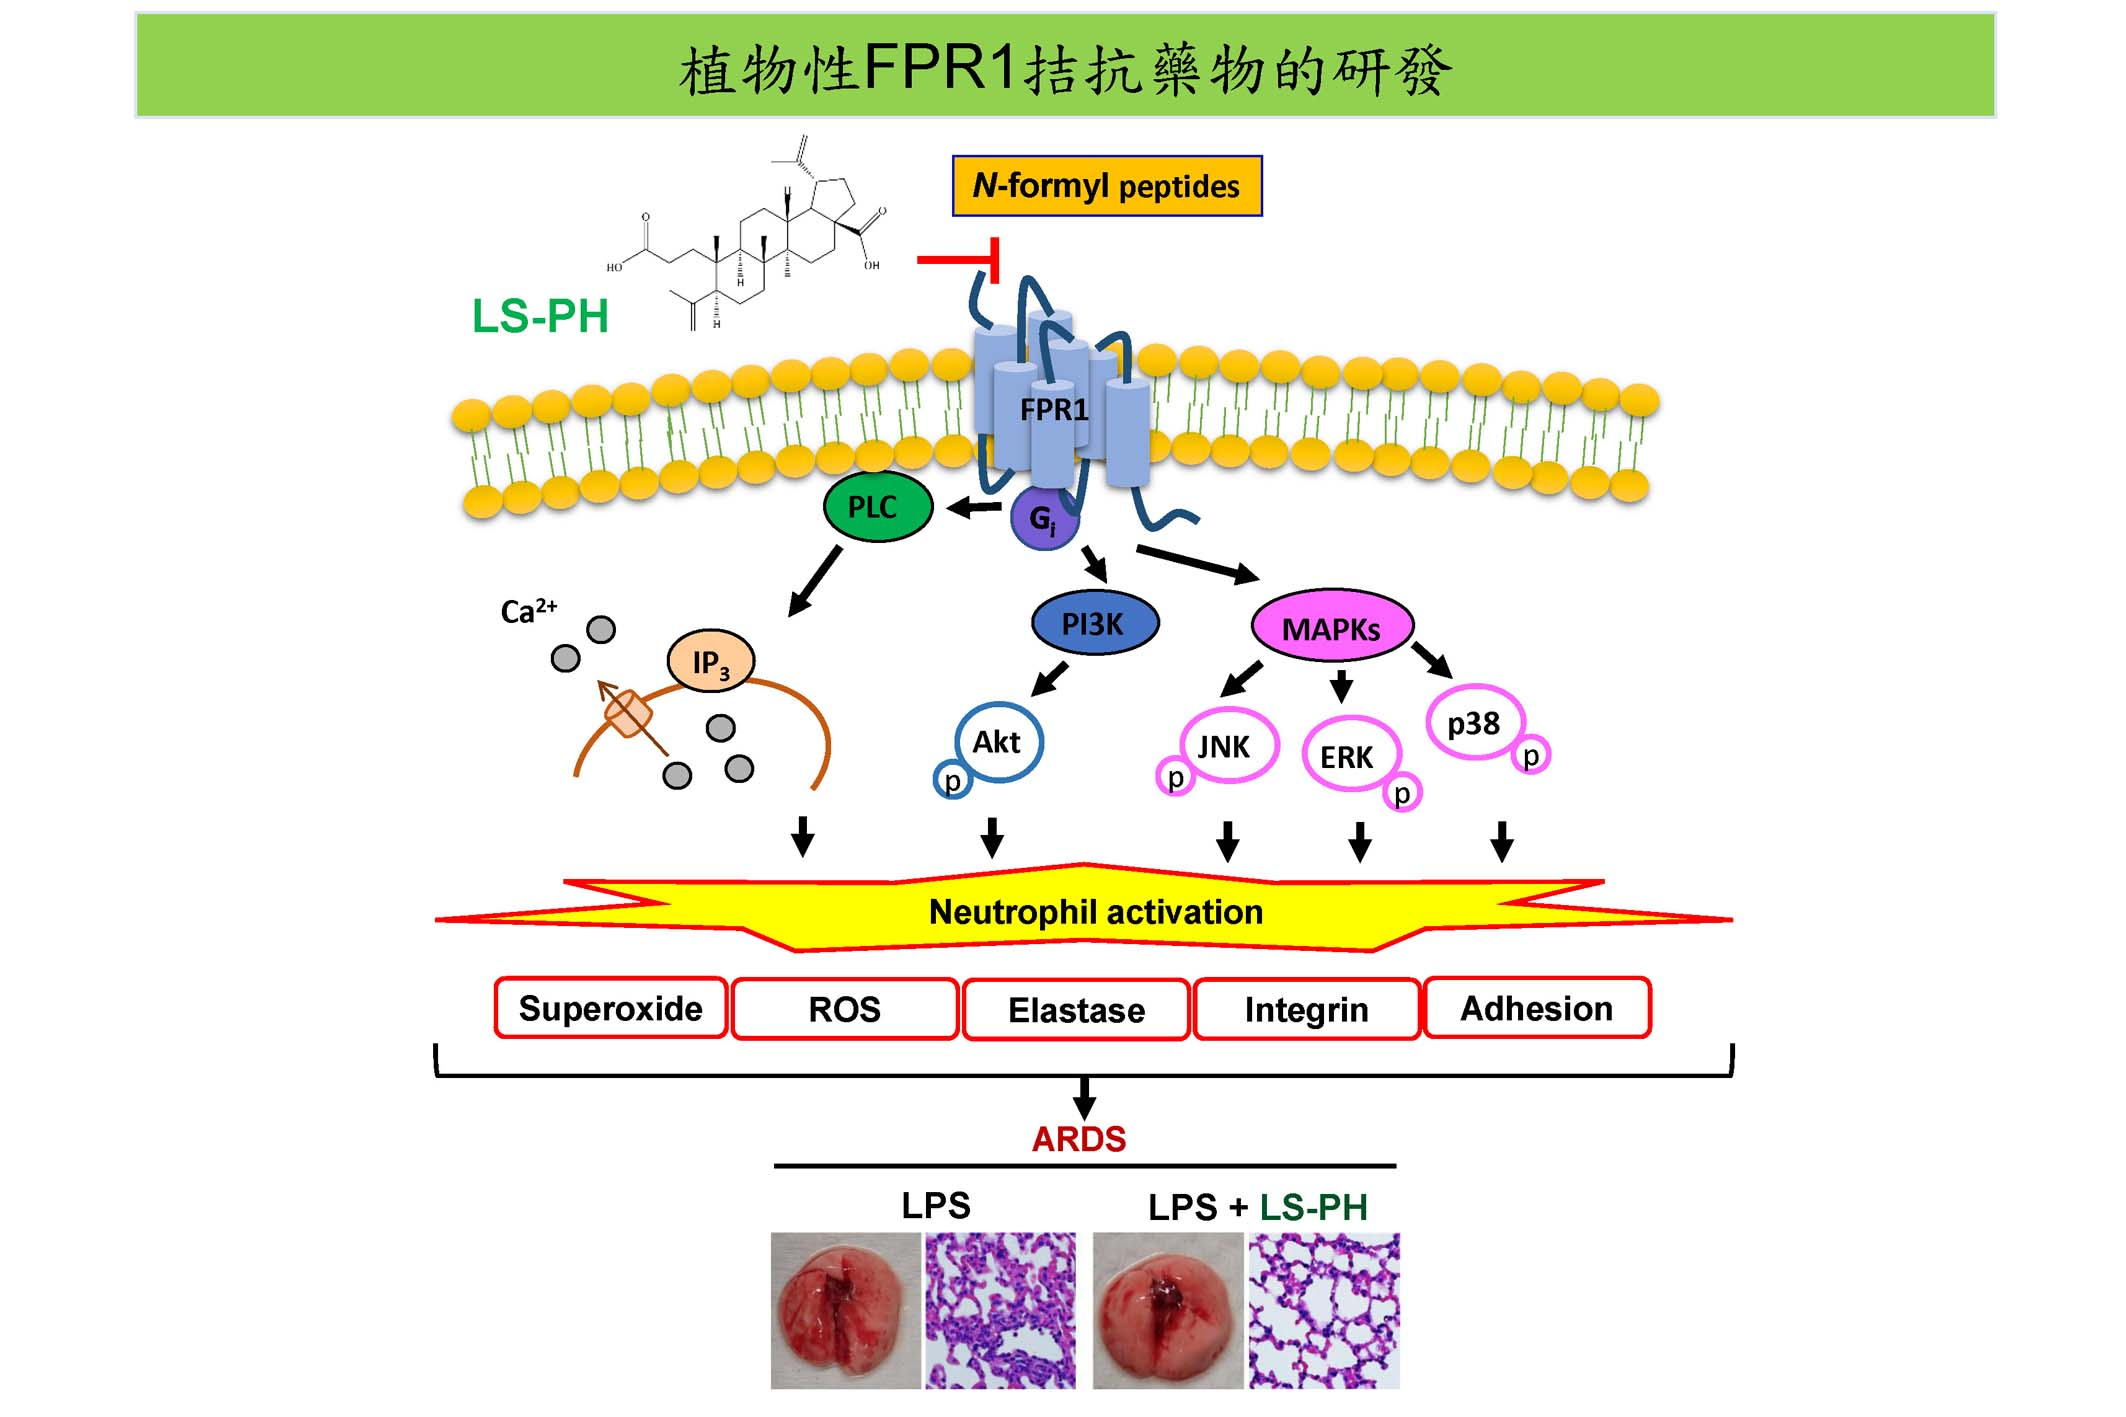 A Fresh Turning Point in Treating Acute Respiratory Distress Syndrome: Formyl Peptide Receptor I Antagonist